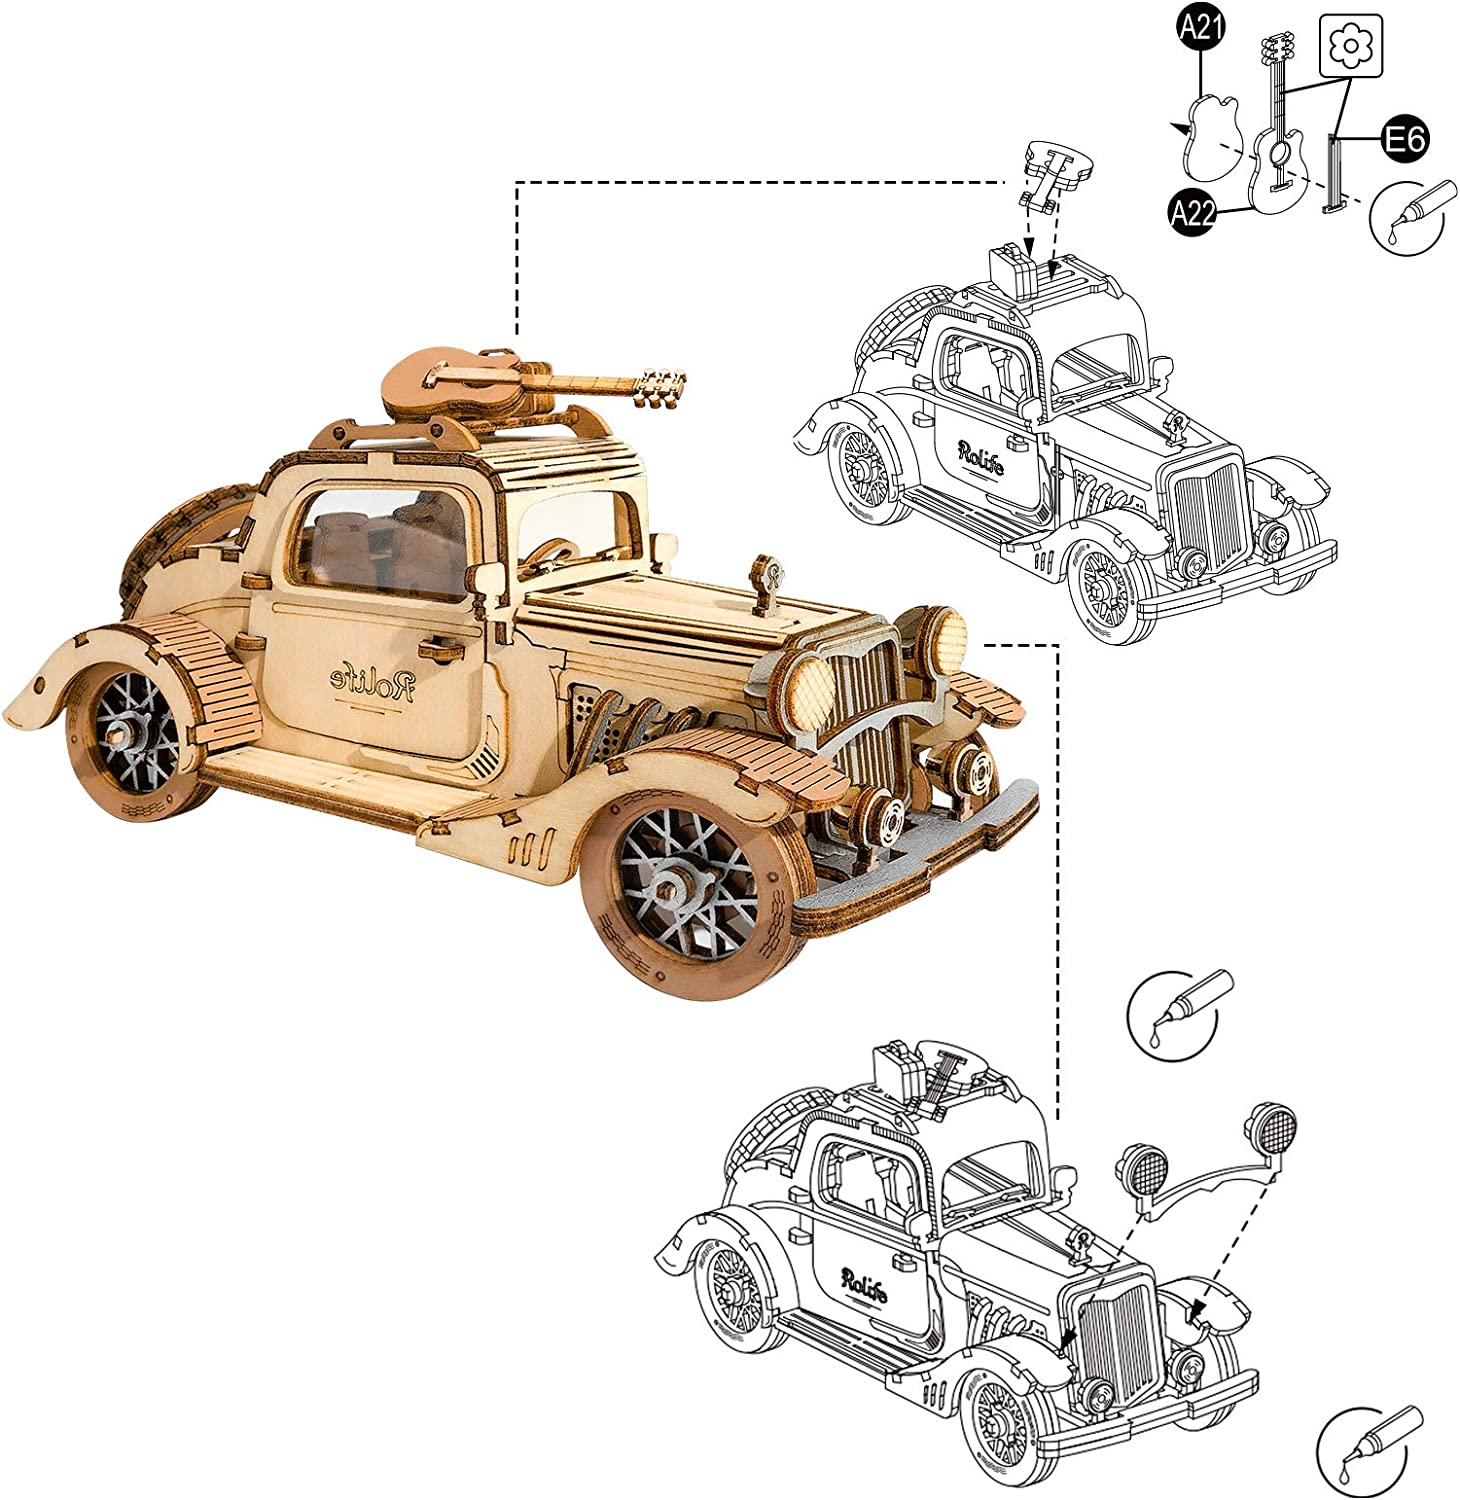 Rolife Build Your Own 3D Wooden Assembly Puzzle Wood Craft Kit Model Vintage Car Gifts Kids Adults